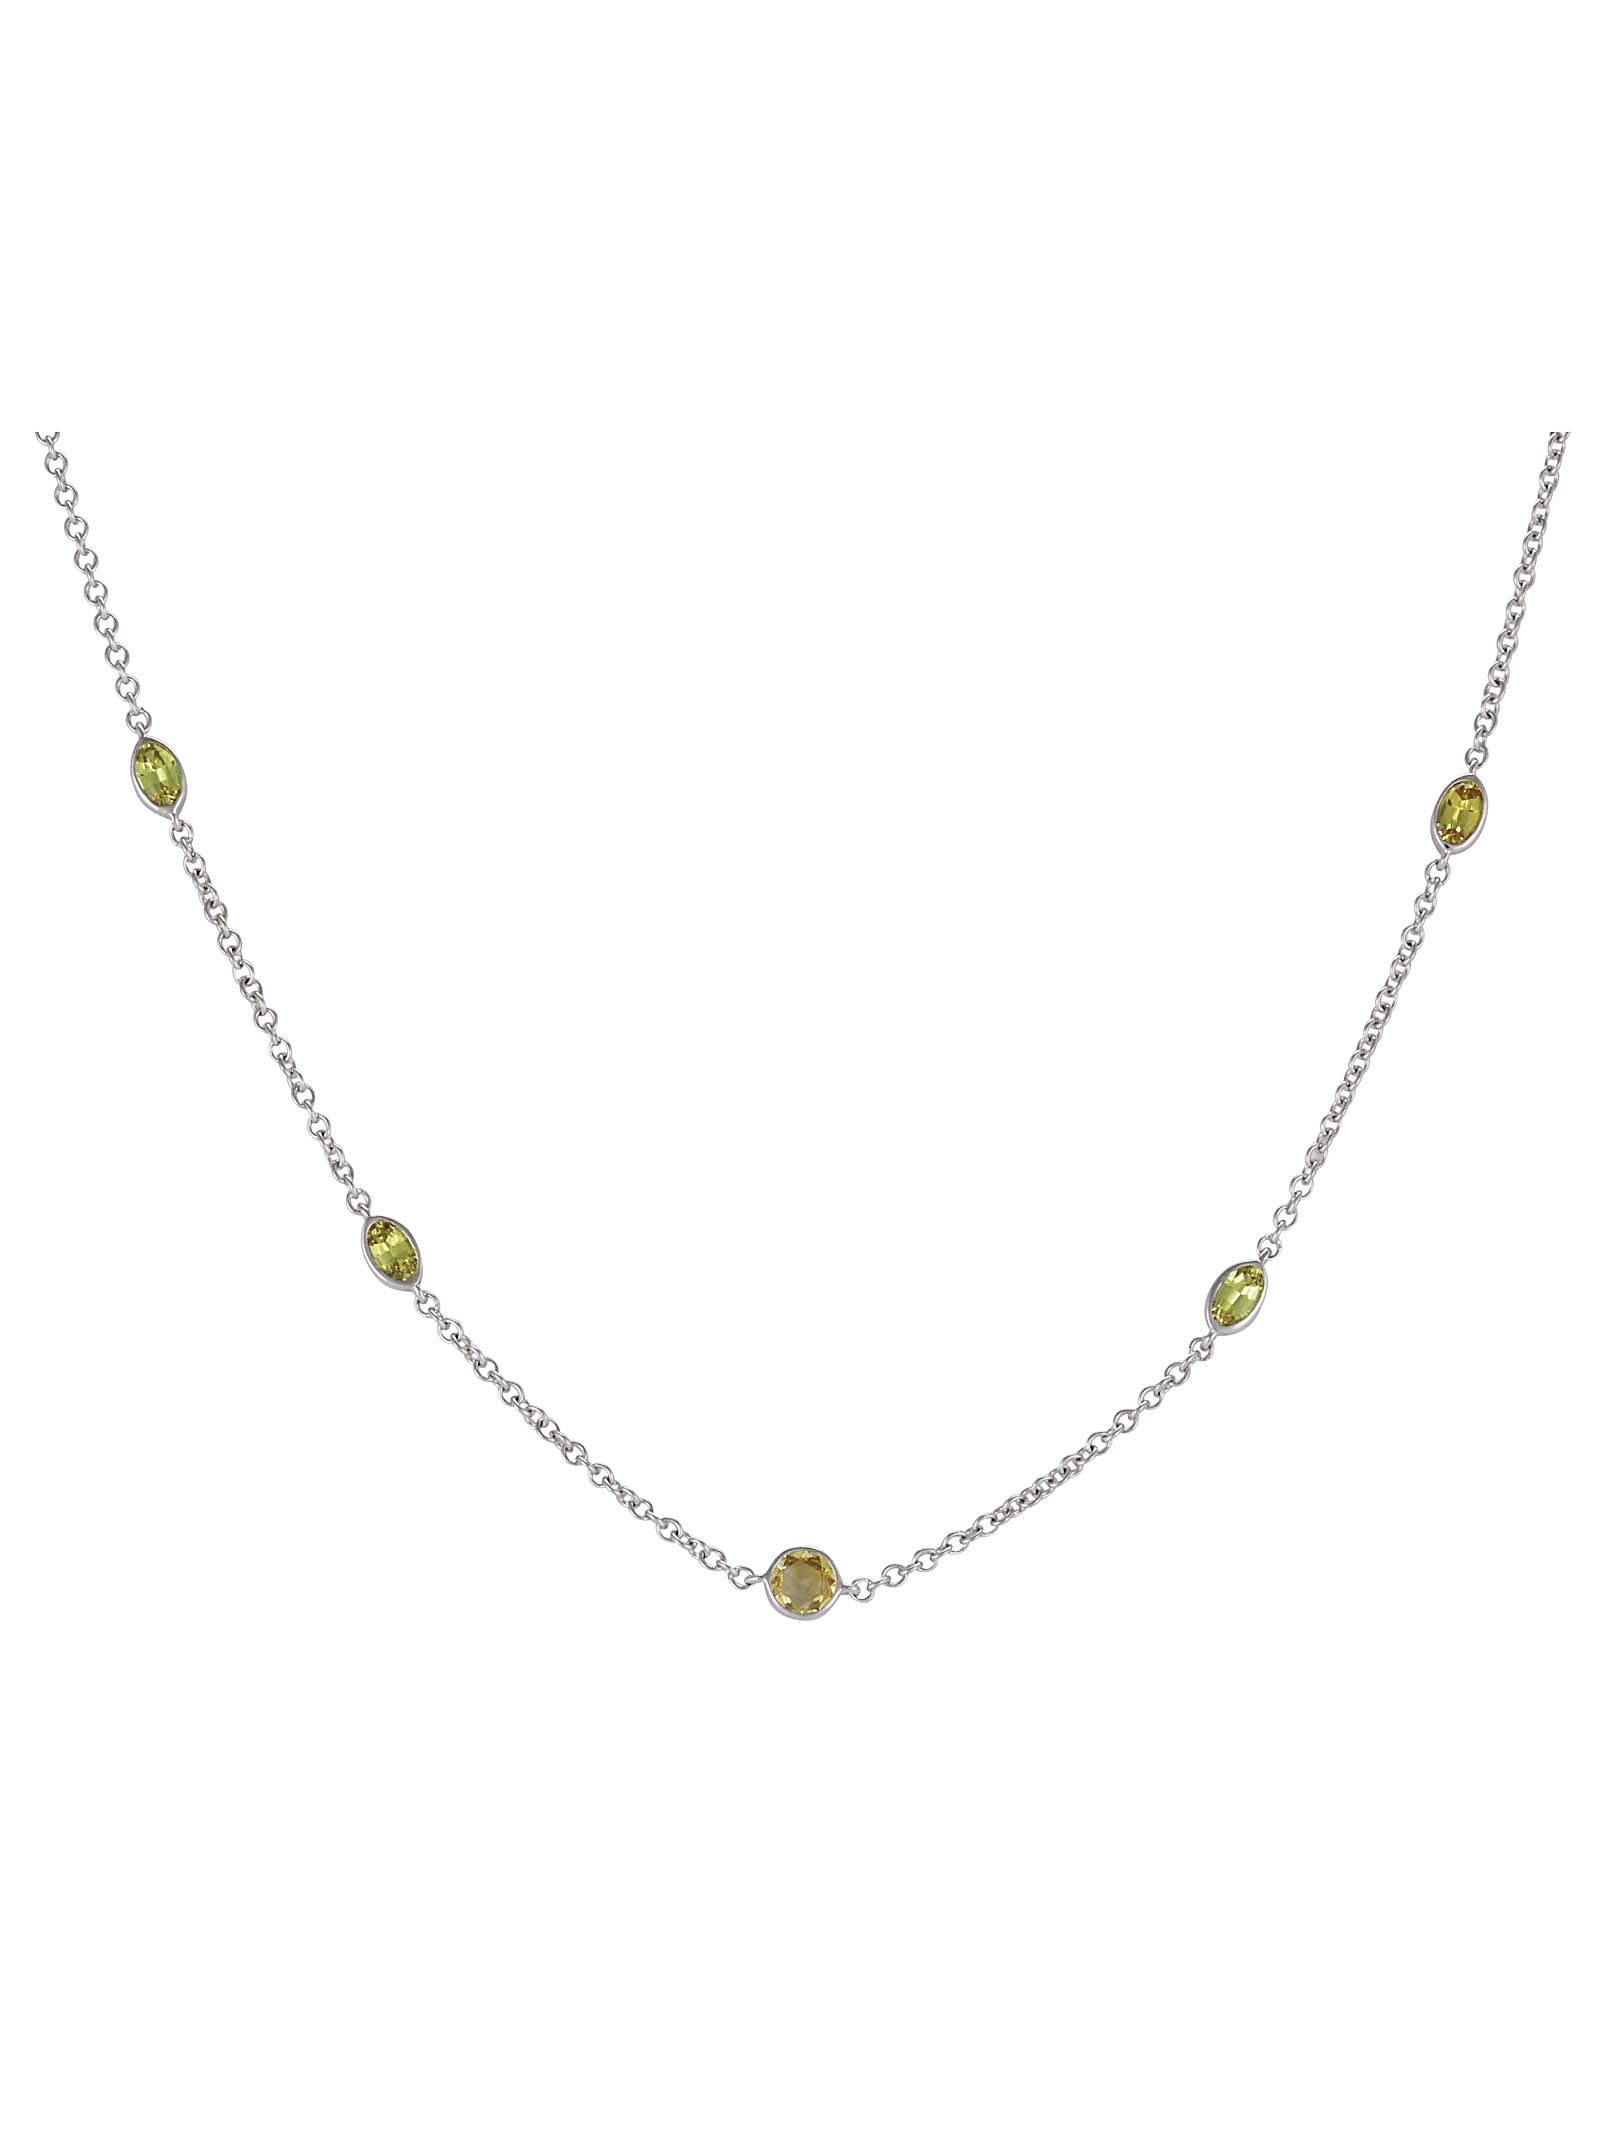 Yellow Sapphire Necklace